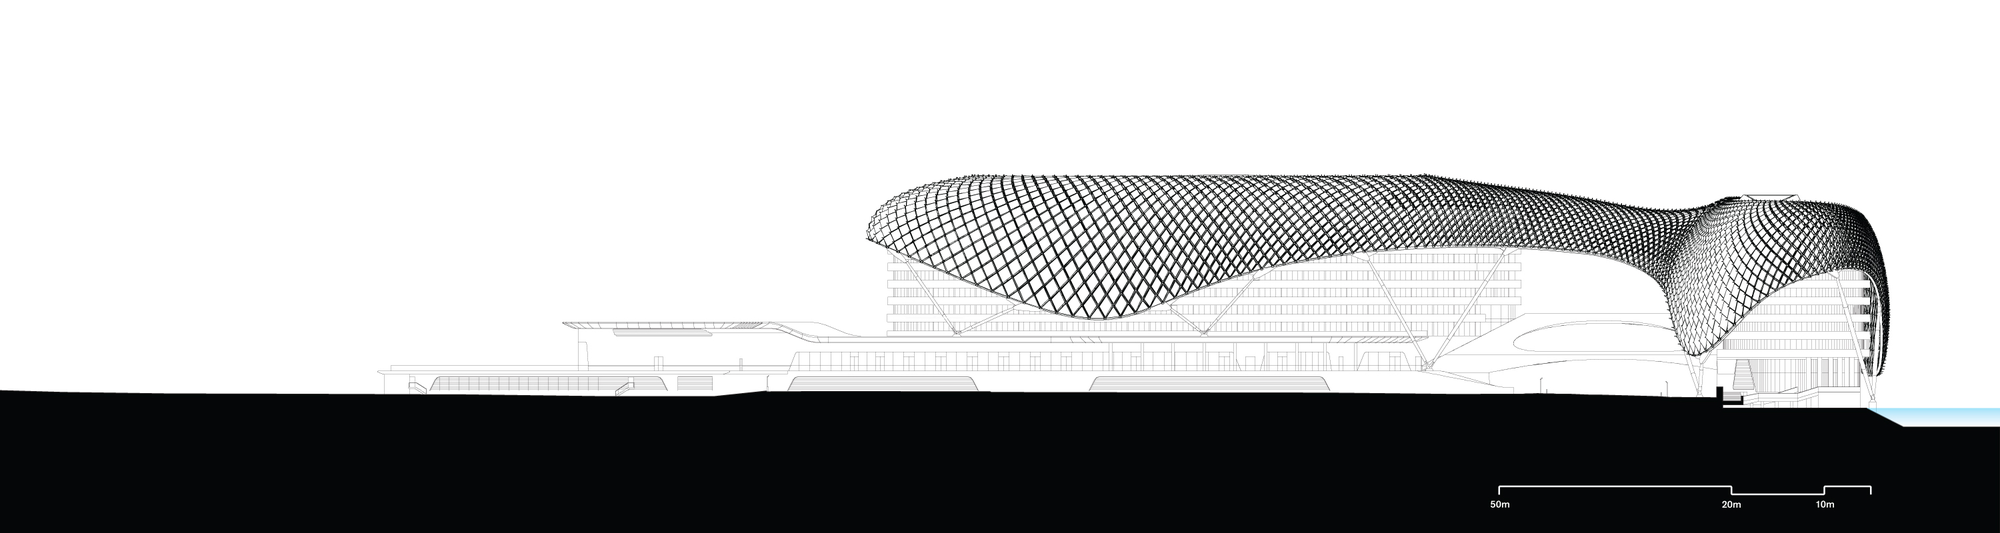 Gallery of the yas hotel asymptote architecture 16 for Asymptote architecture yas hotel